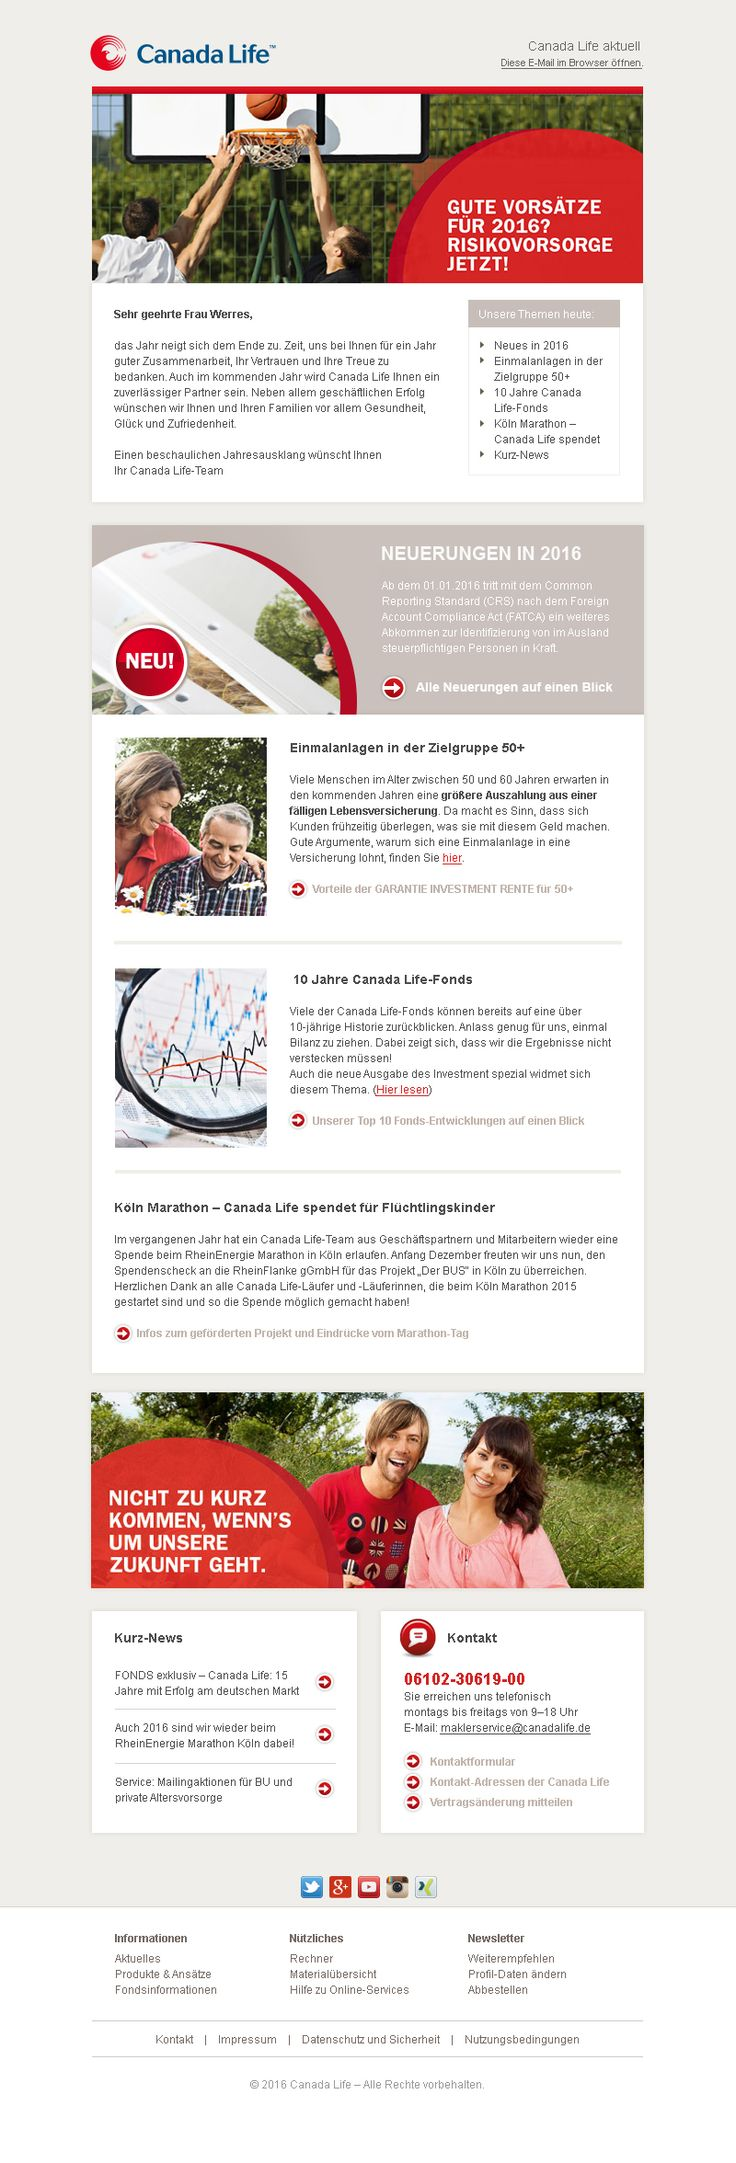 Unser Newsletter Design für ein erfolgreiches E-Mail Marketing für die Canada Life Assurance Europe Limited. #Newsletterdesign #Email-Marketing #Newsletter